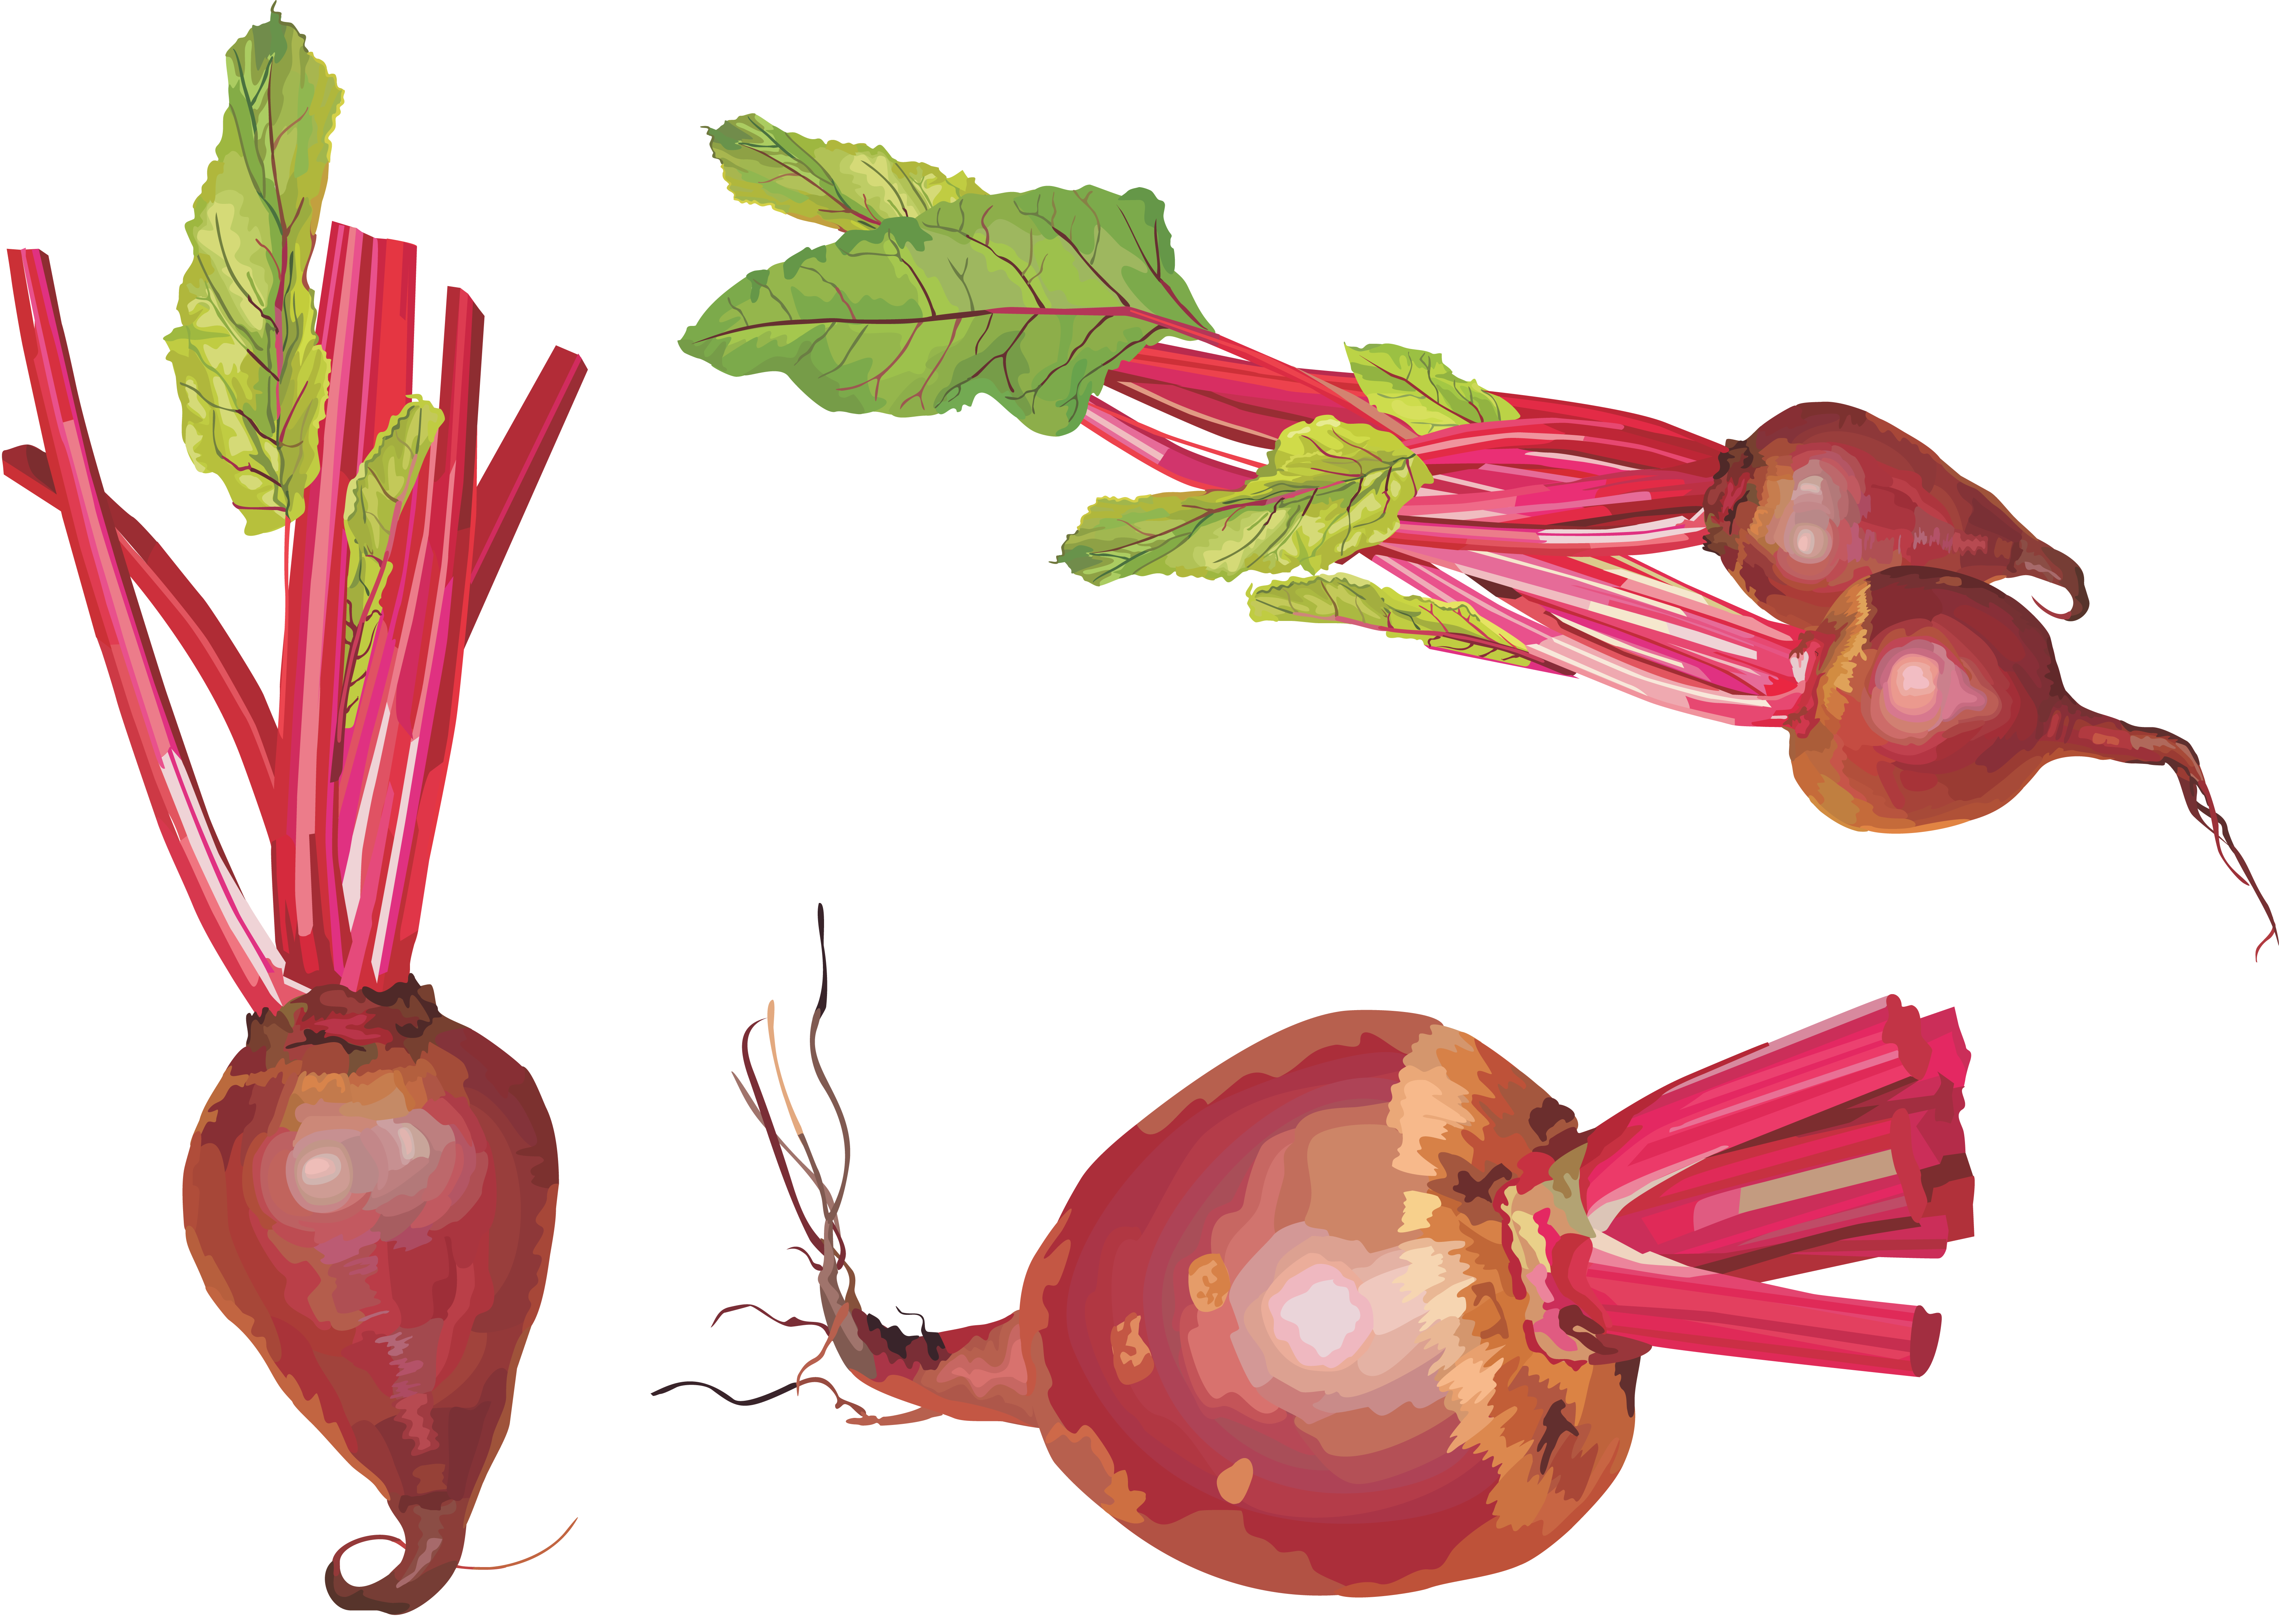 free clipart beets - photo #37